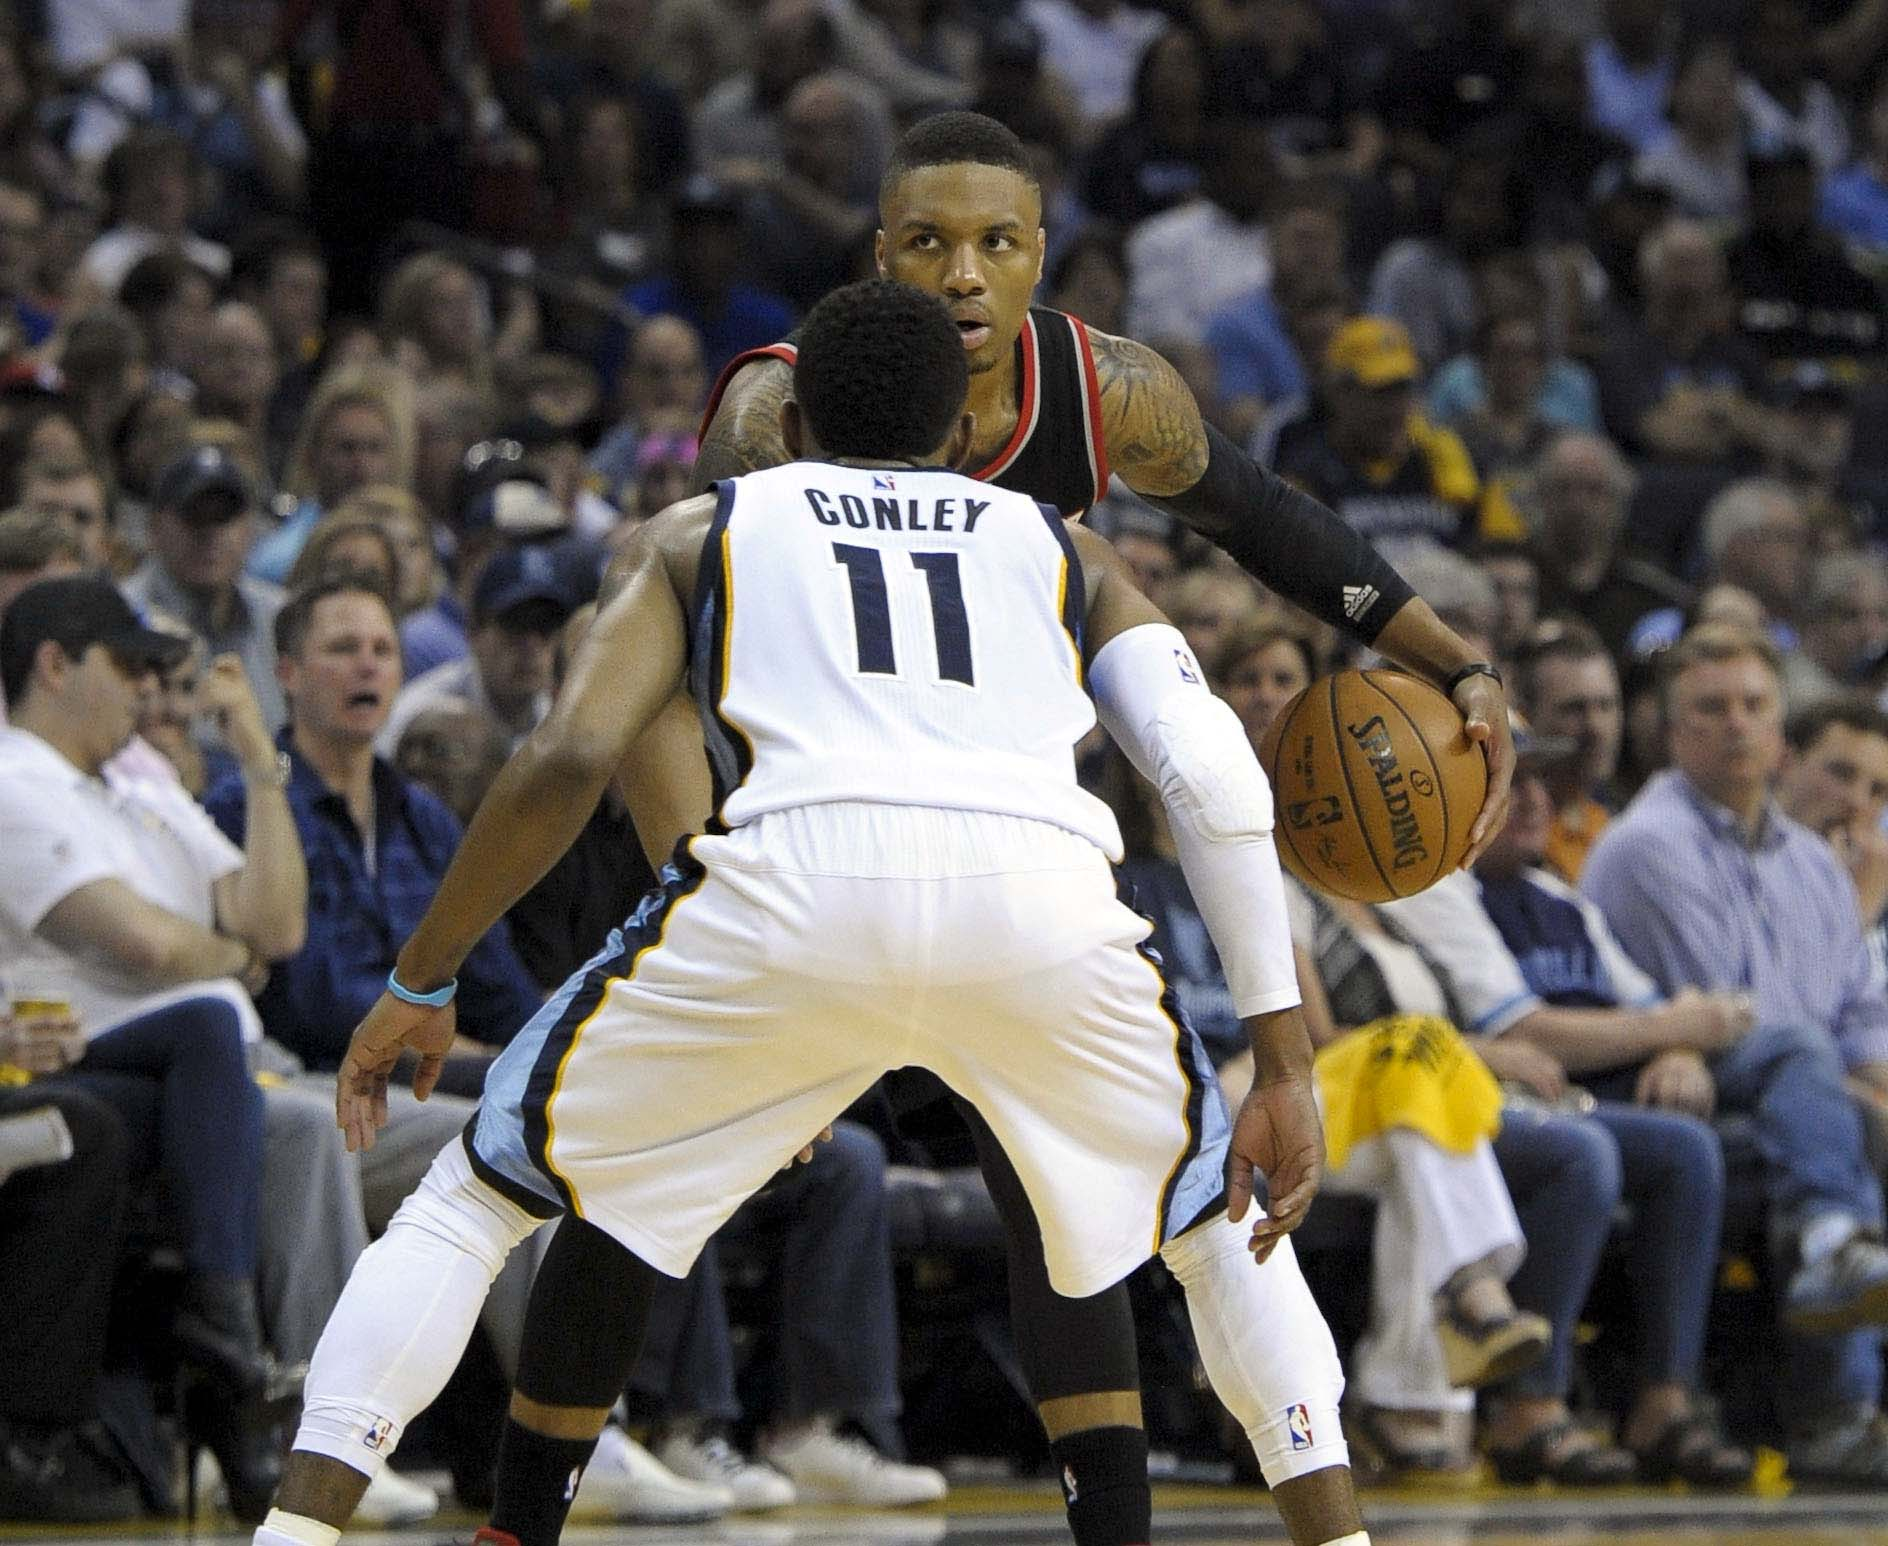 Conley vs. Lillard will continue to be a key match-up in Game Two and beyond.